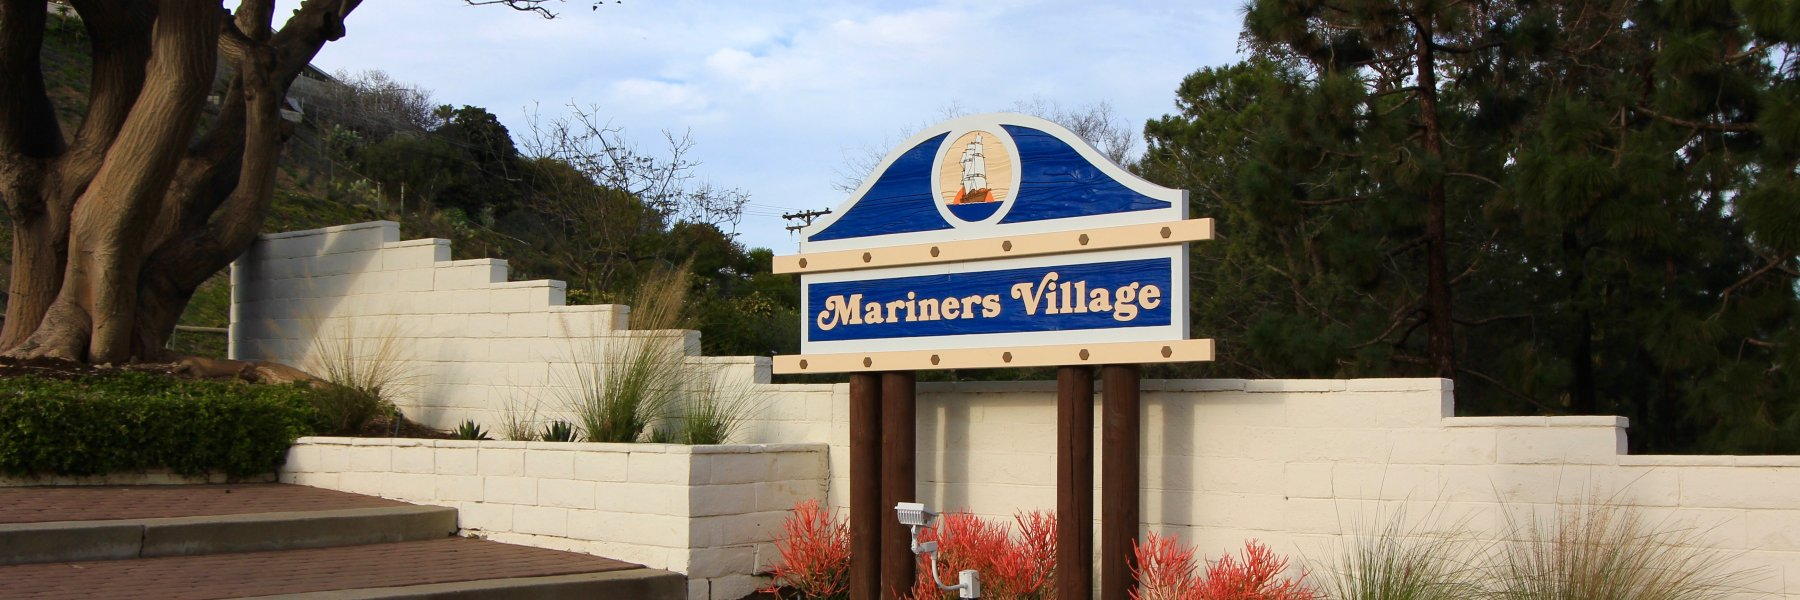 Mariners Village is a community of homes in San Juan Capistrano California